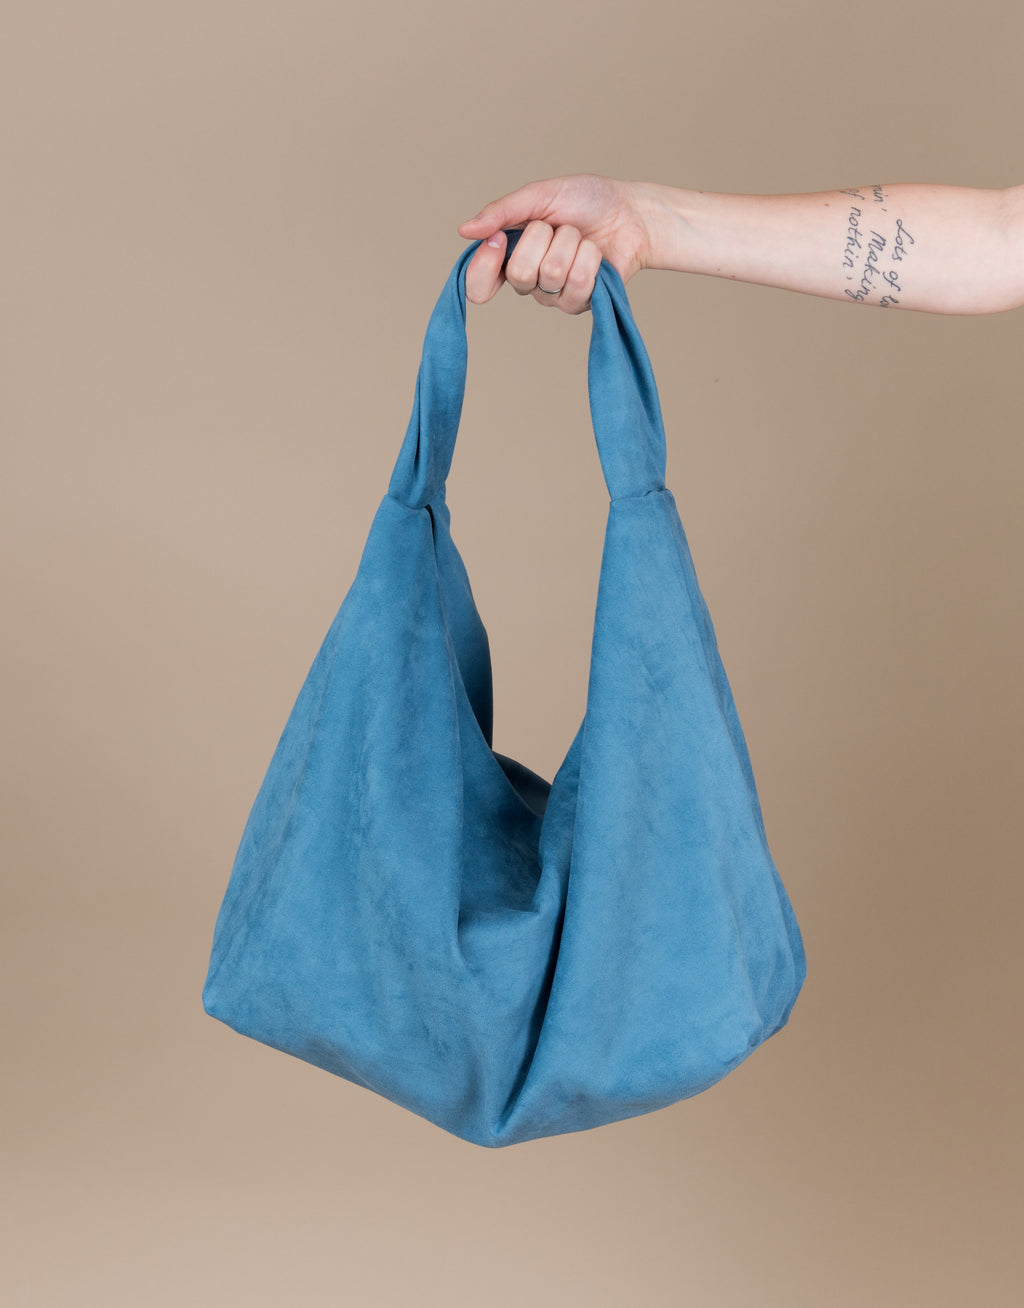 Small batch casual chic clothing sustainably handmade for every woman. Blue Faux Suede Hobo Bag